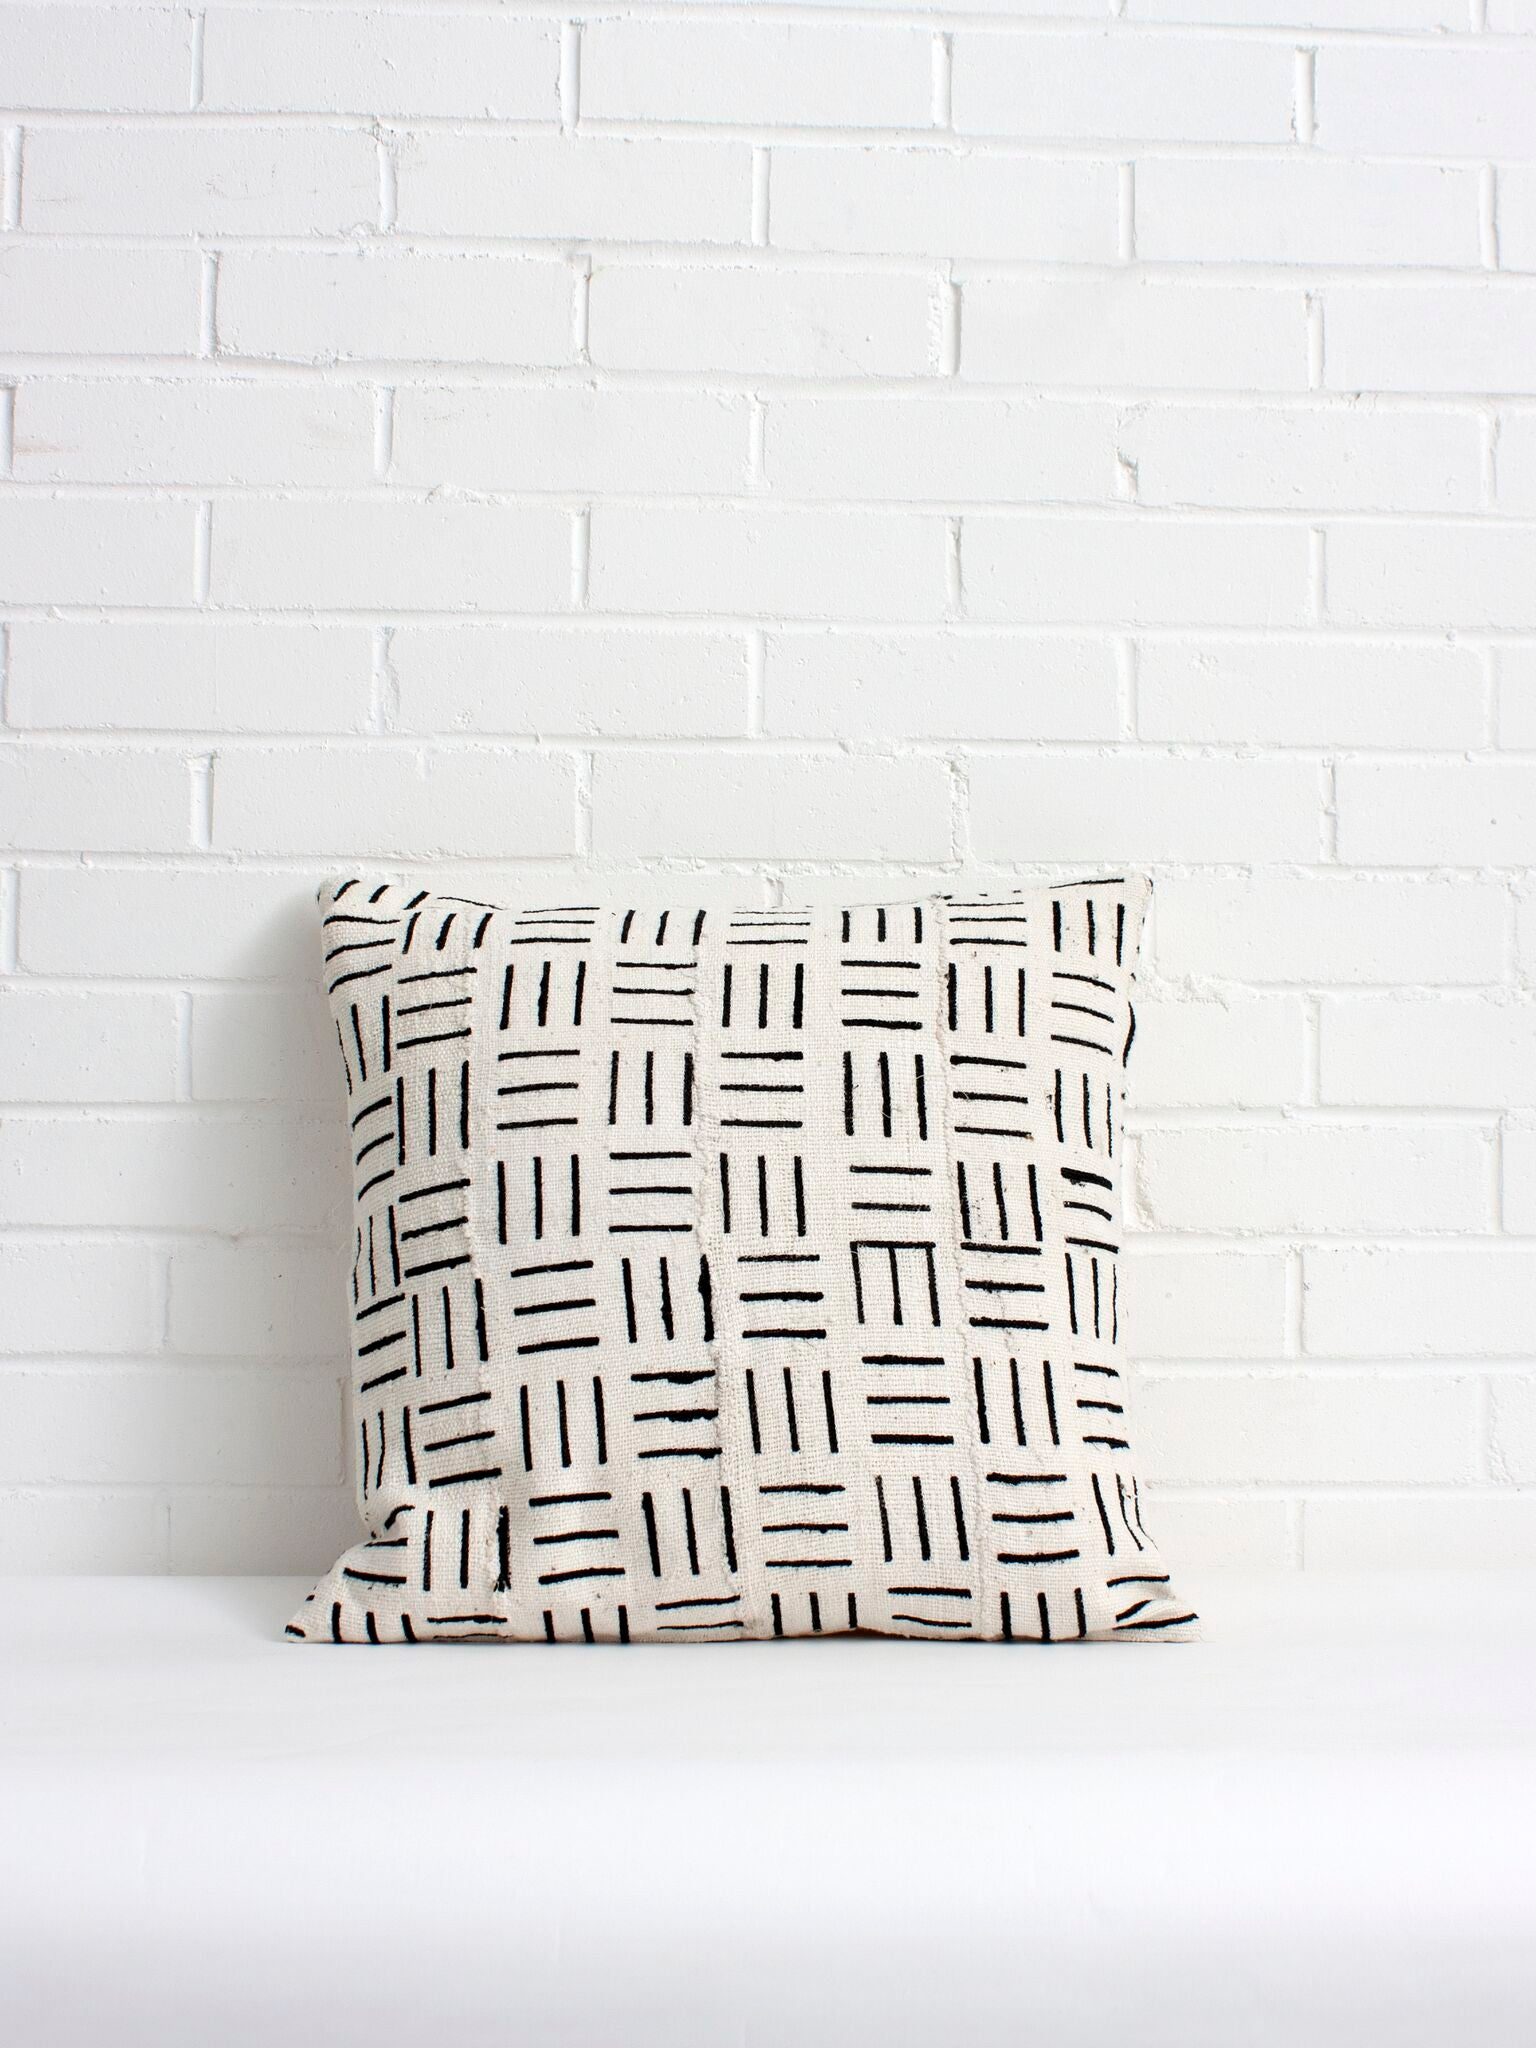 White Mudcloth Pillows with Black Line Print - Bohemian Monochrome Pillow Cover